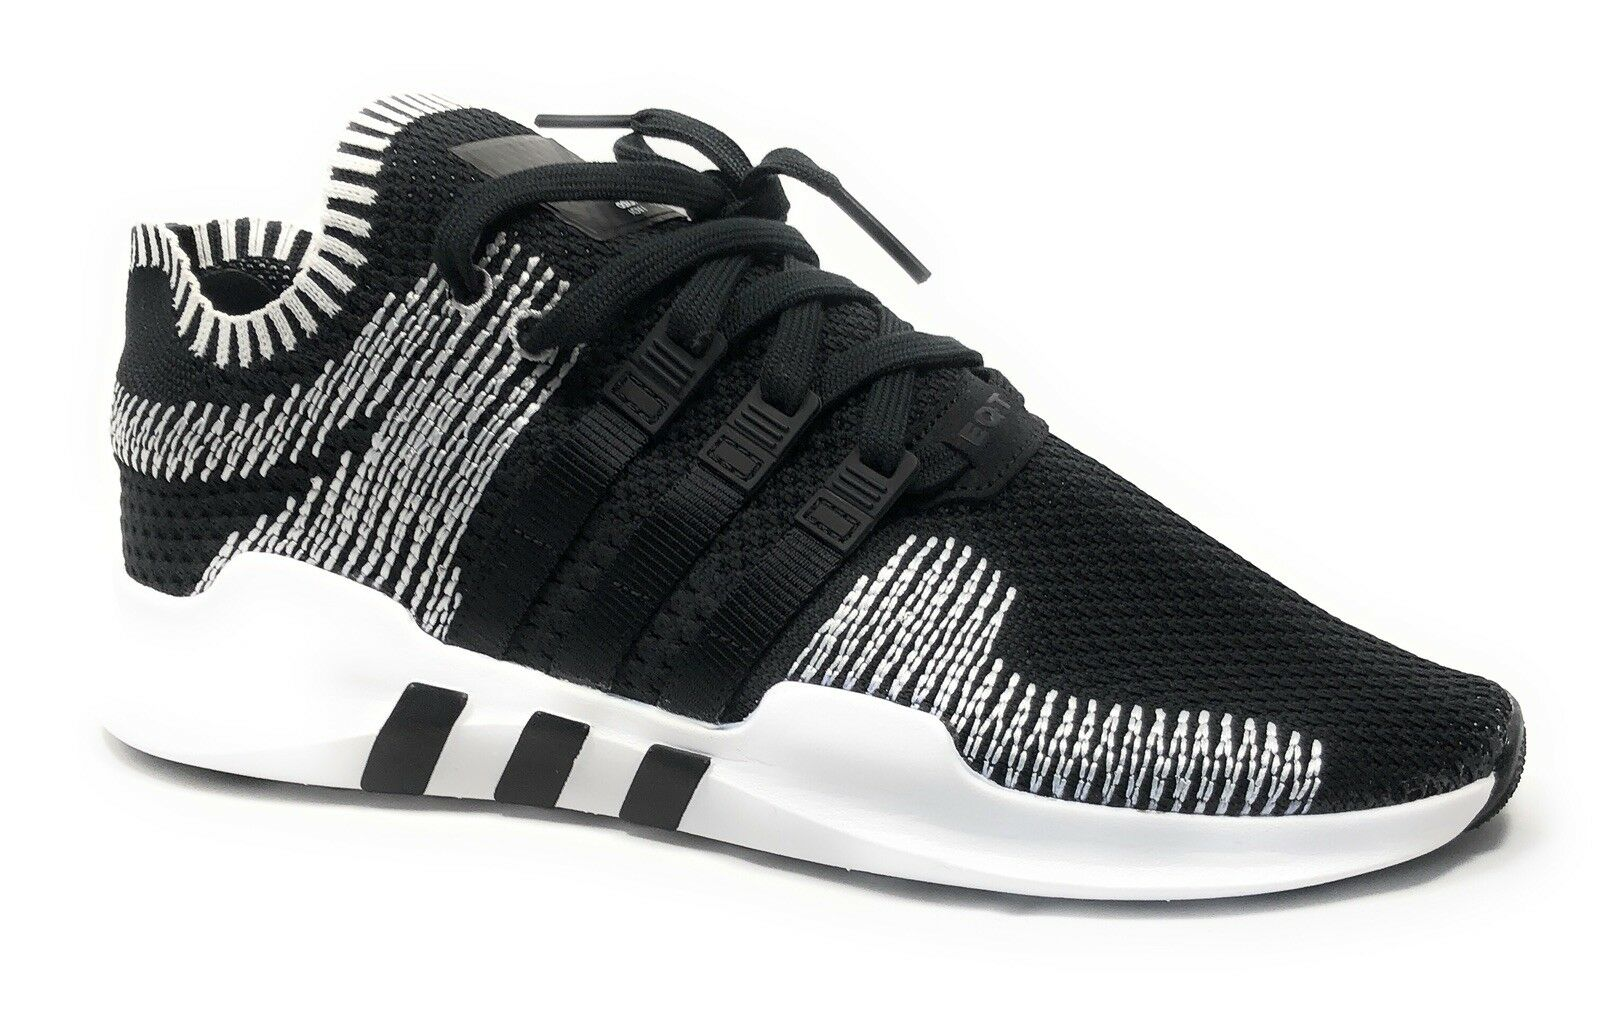 Adidas EQT Support ADV Primeknit Core Black/White BY9390 Men's size 9.5